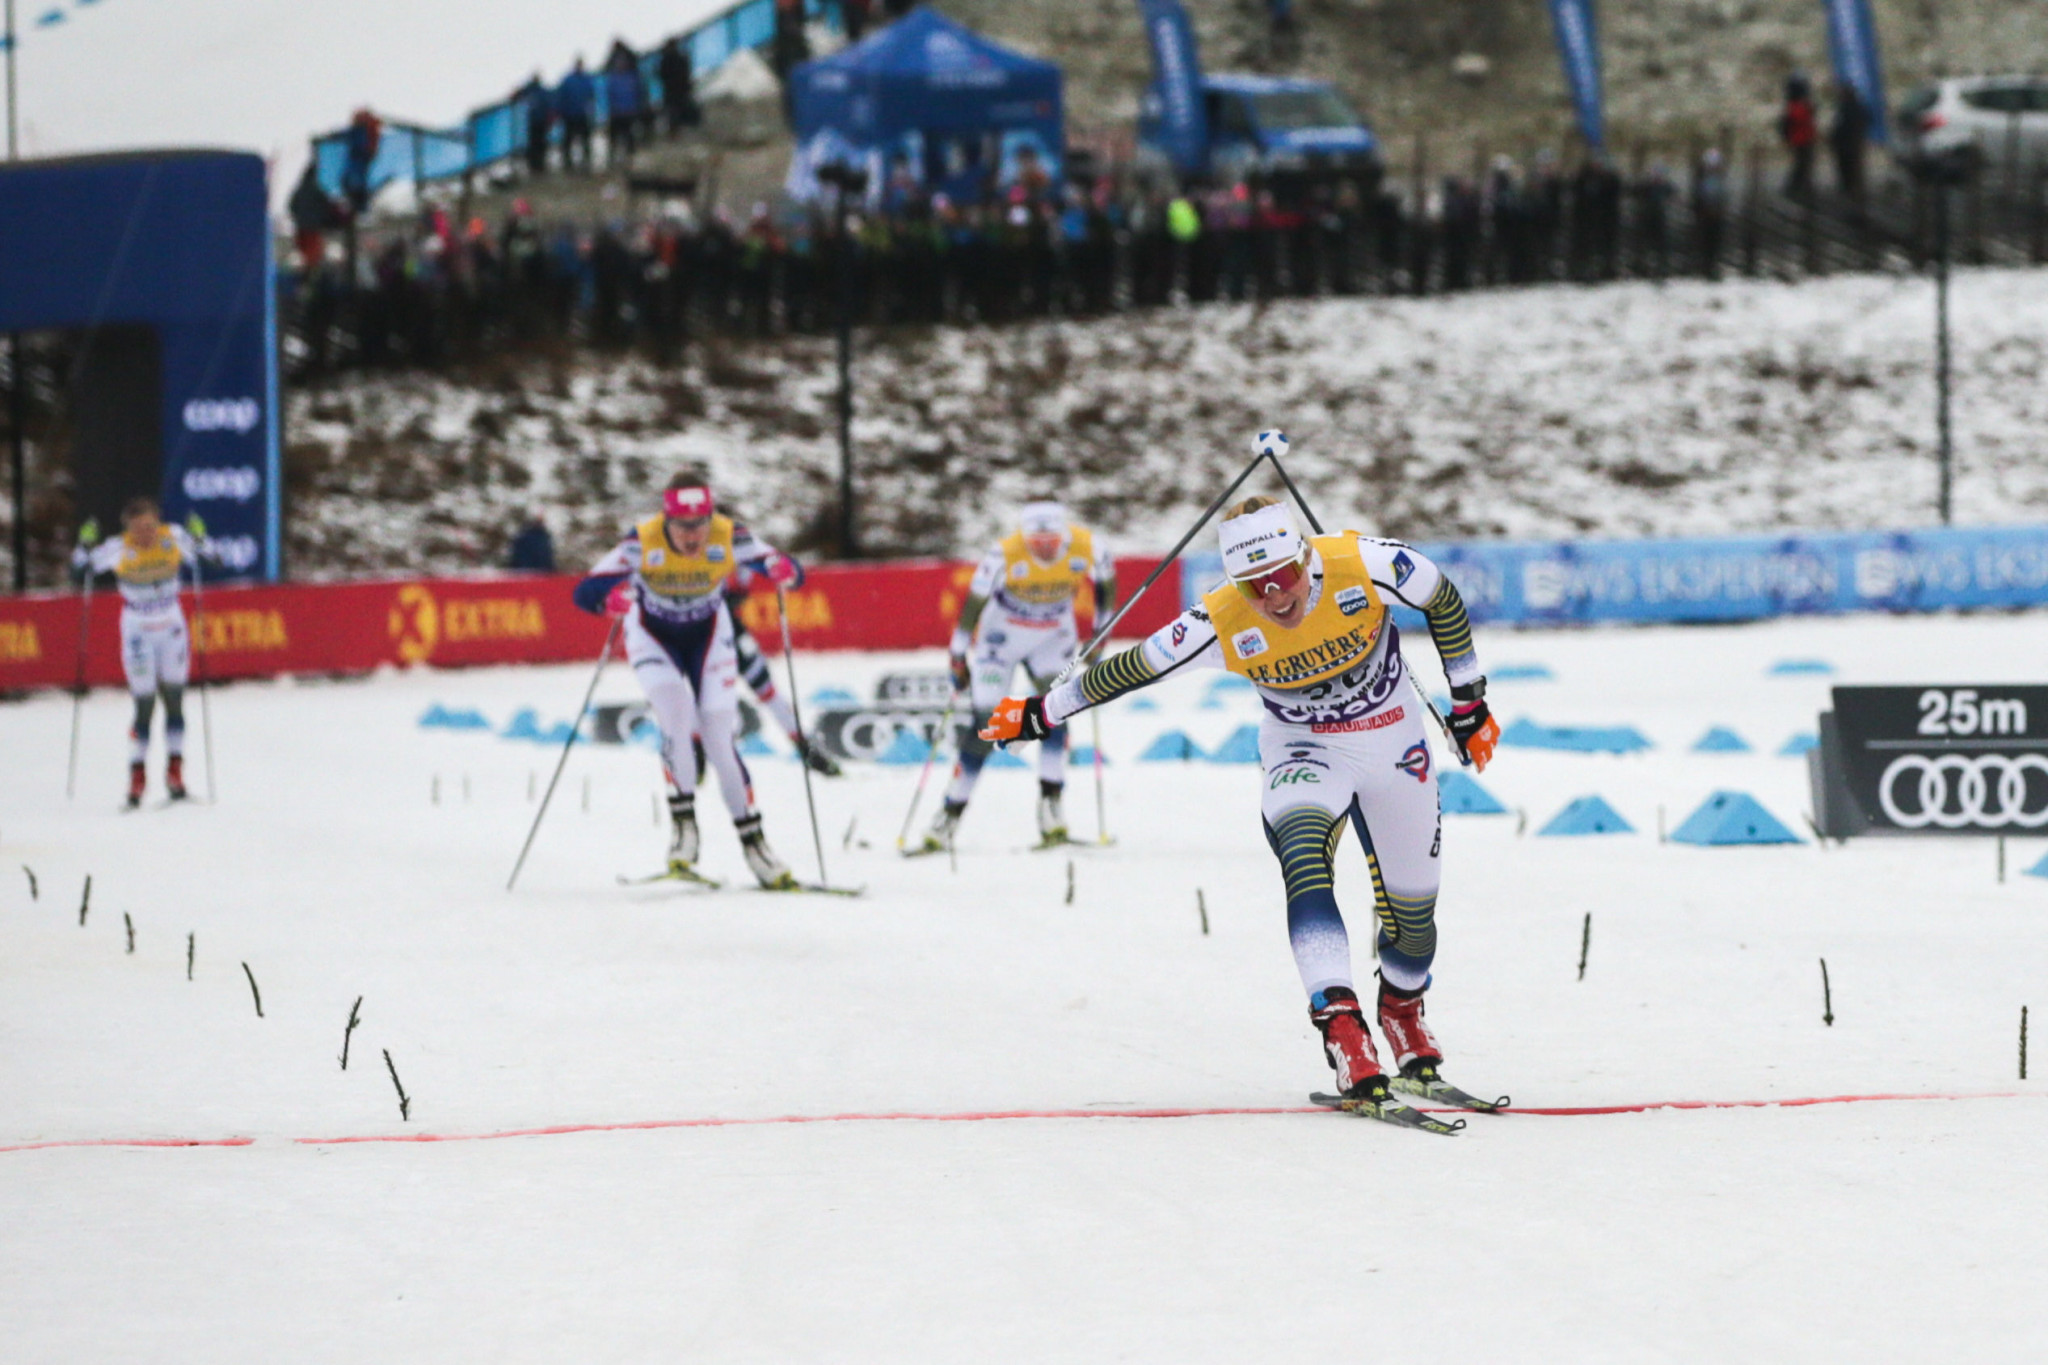 Sweden's Jonna Sundling tasted victory today at the FIS Cross-Country World Cup ©Getty Images